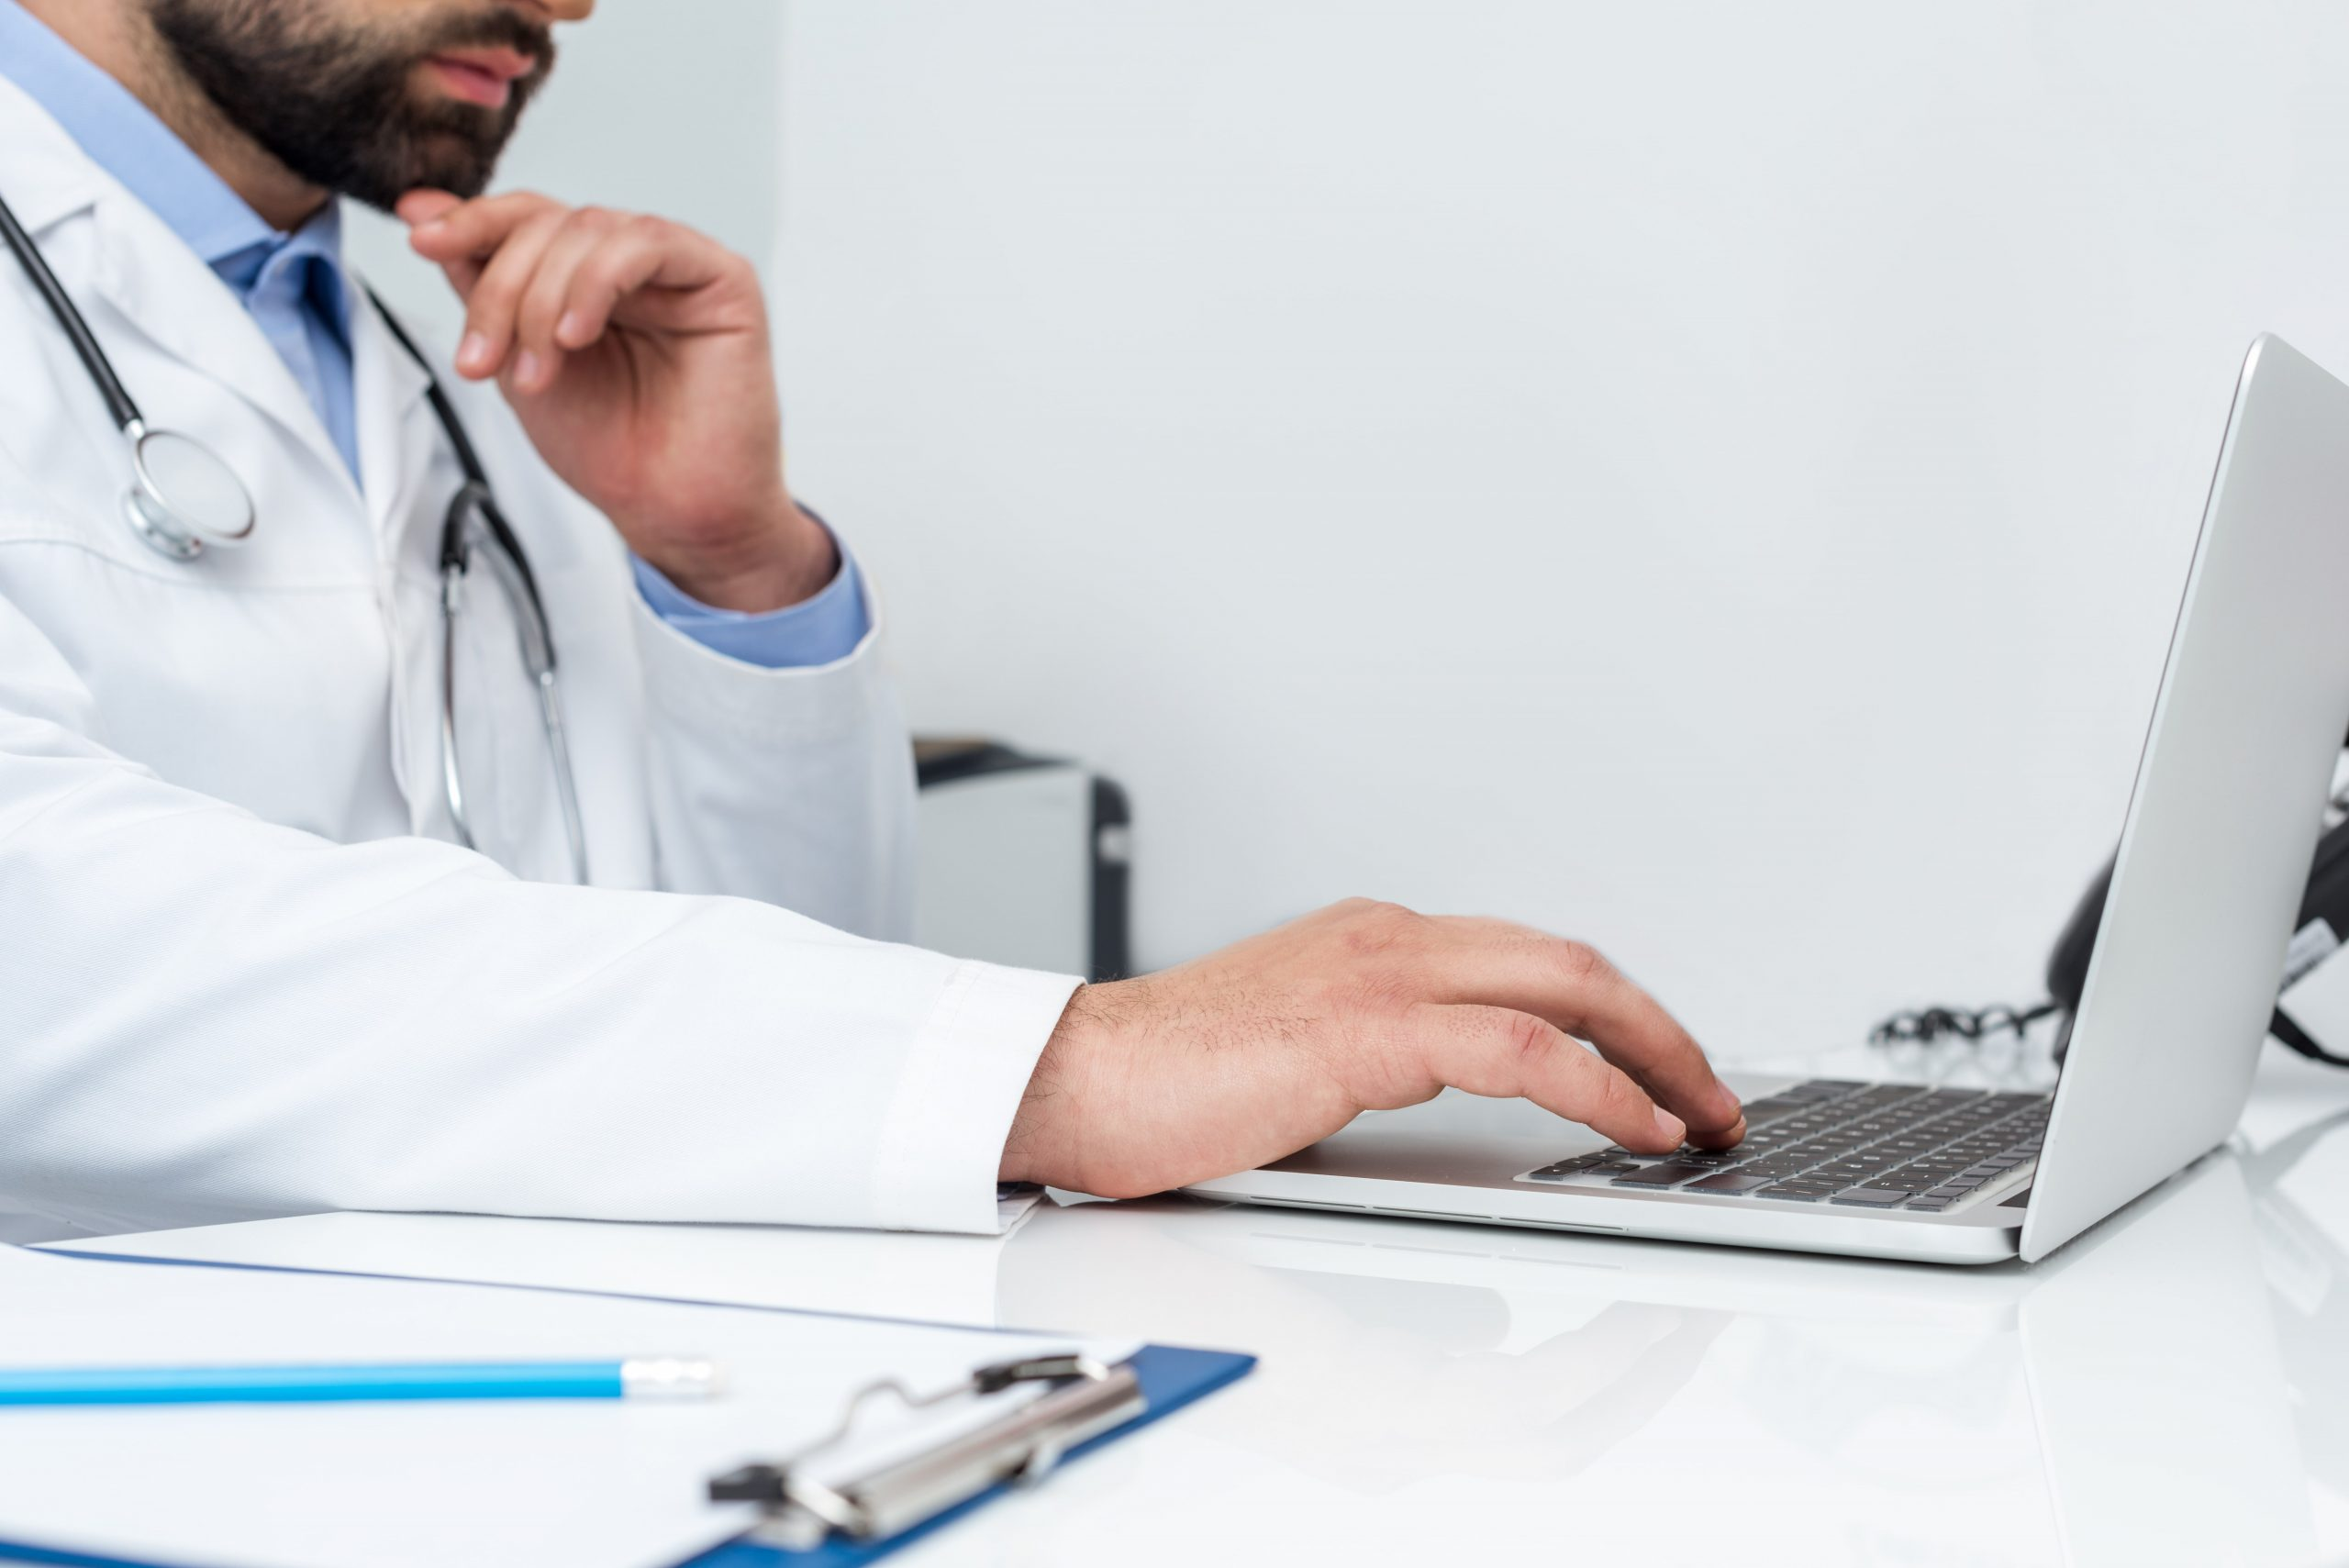 cropped-shot-of-doctor-using-laptop-at-workplace-P2QZMRQ